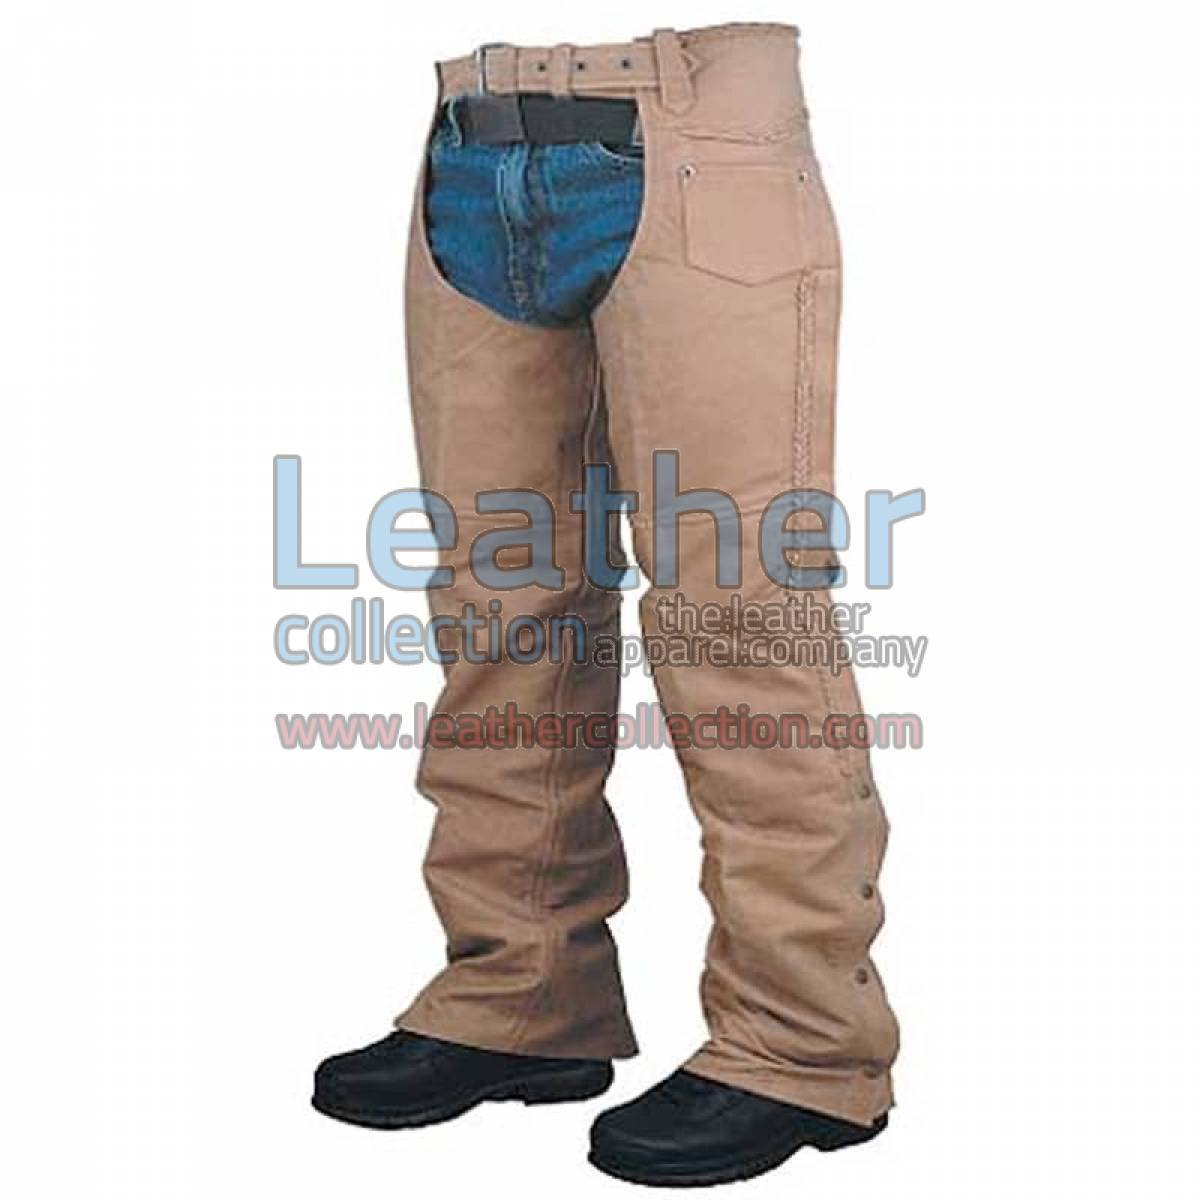 Leather Braided Chaps For Men